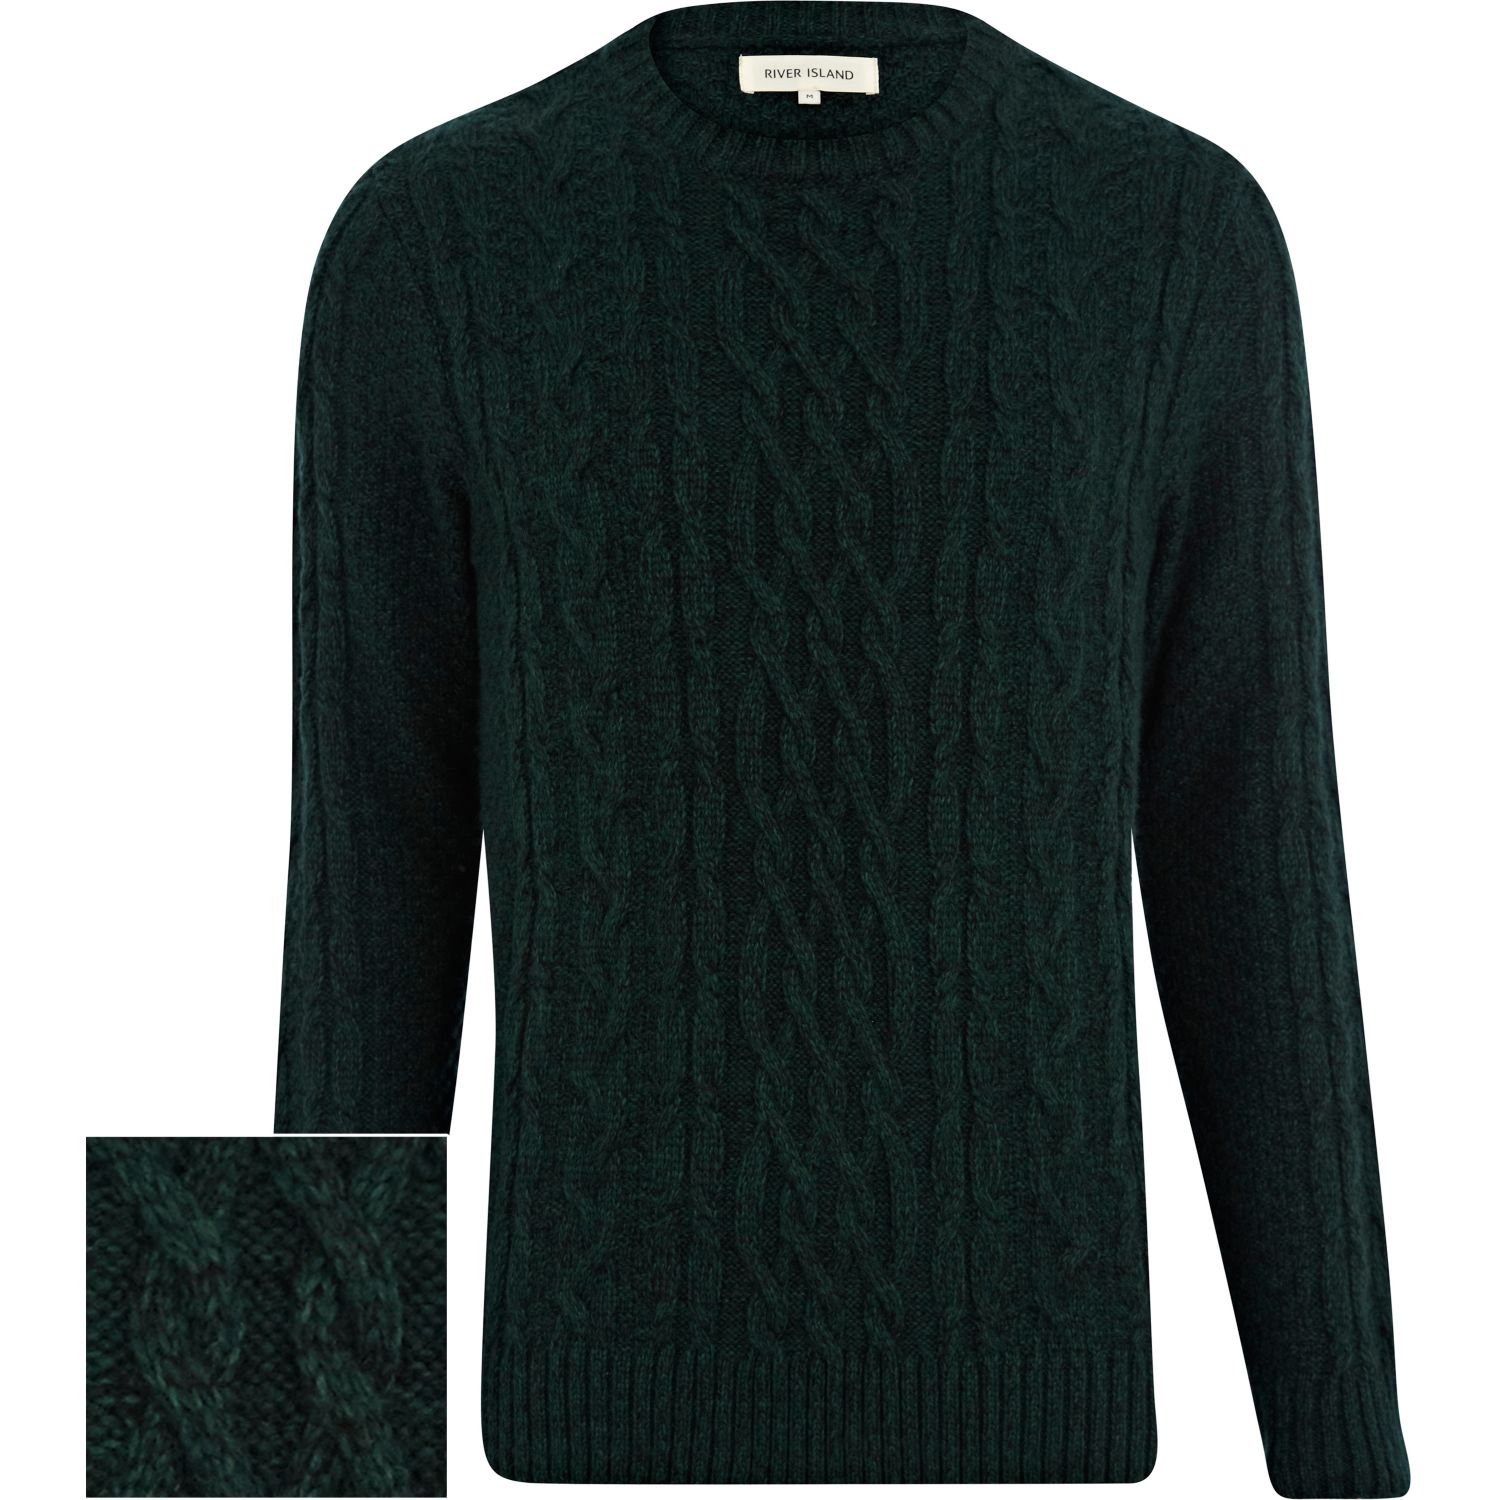 River Island Dark Green Cable Knit Sweater In Green For Men Lyst